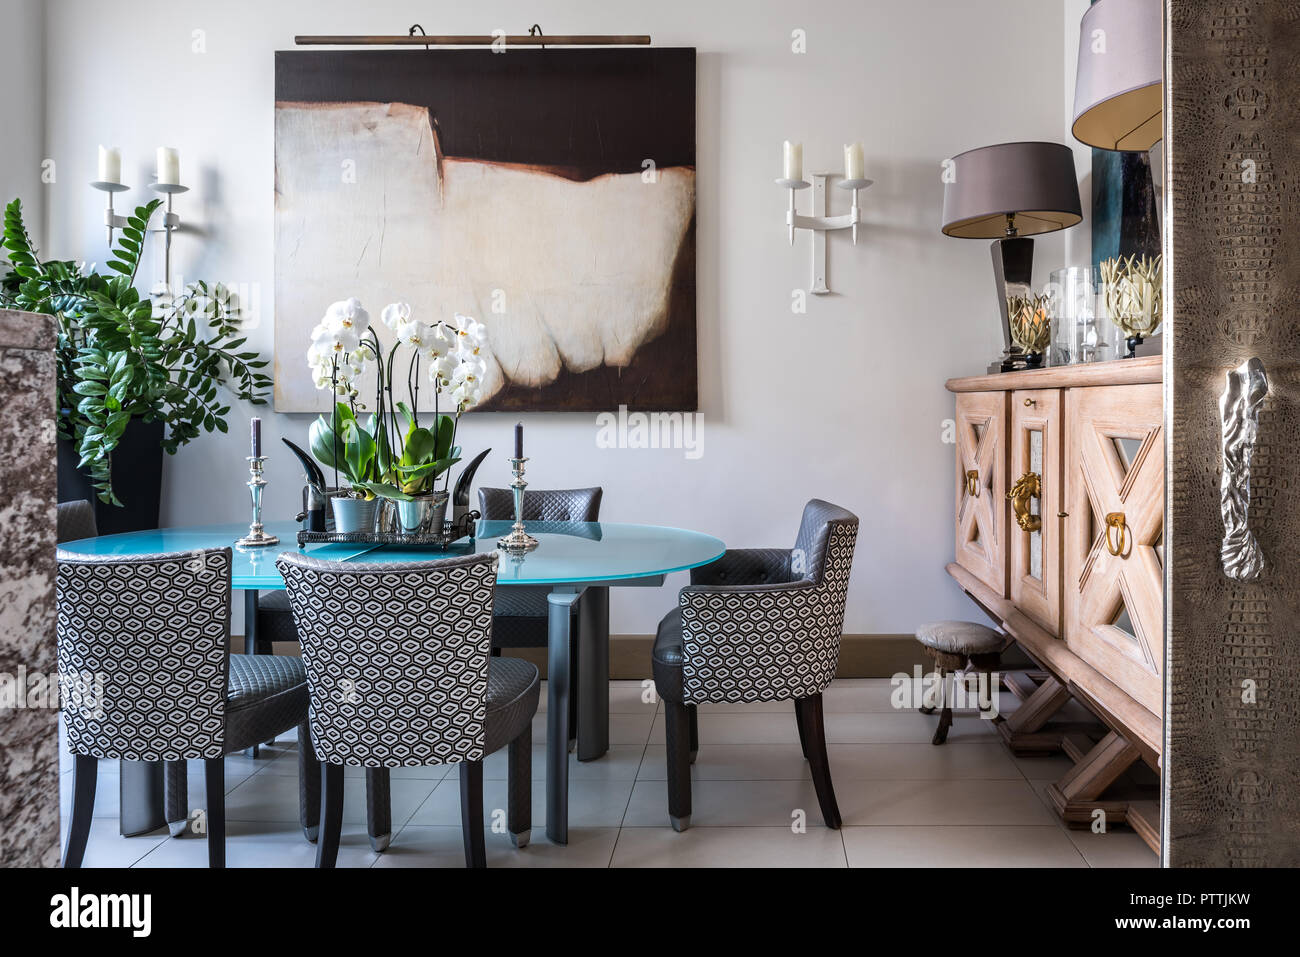 Large Wooden Sideboard And Modern Art In Dining Room With Upholstered Chairs